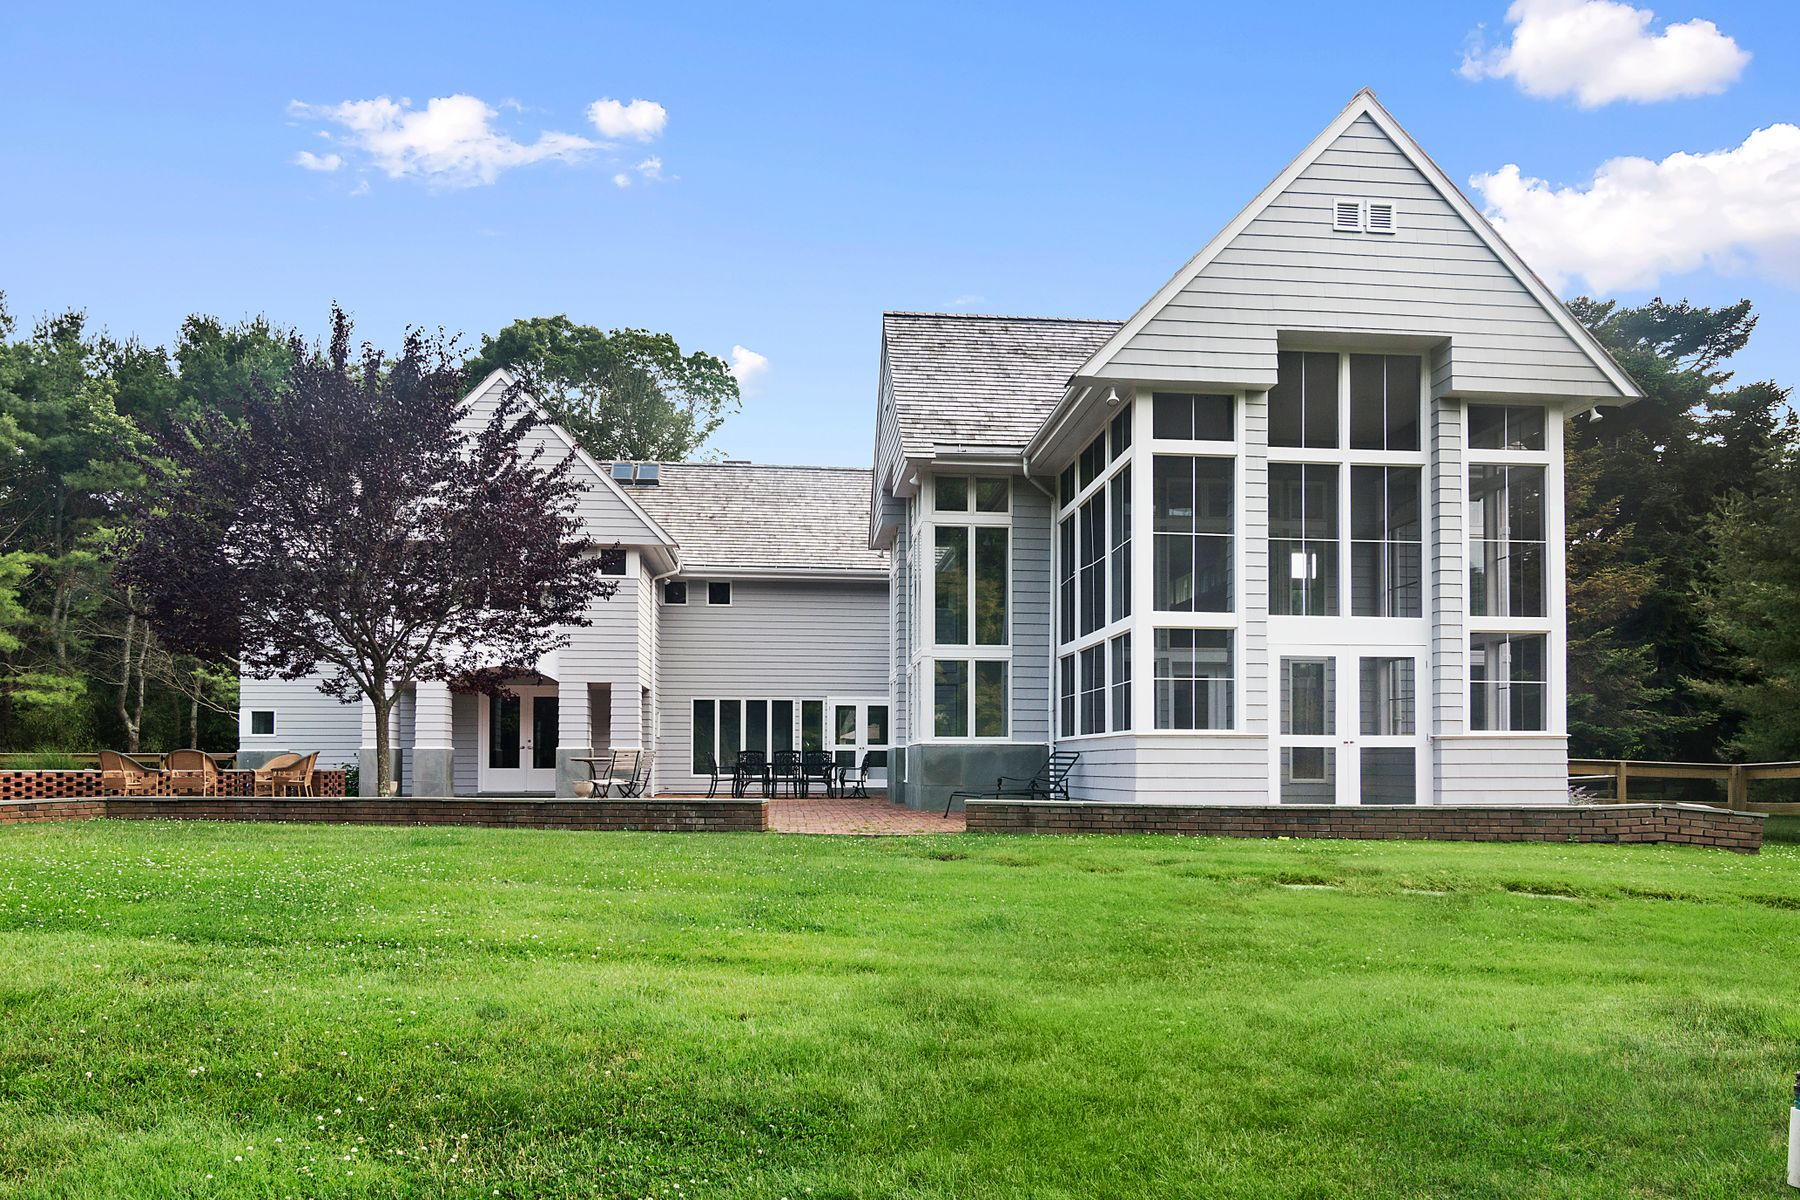 Single Family Homes for Sale at BELL ESTATE TRANSITIONAL 49 Broadview Road Amagansett, New York 11930 United States